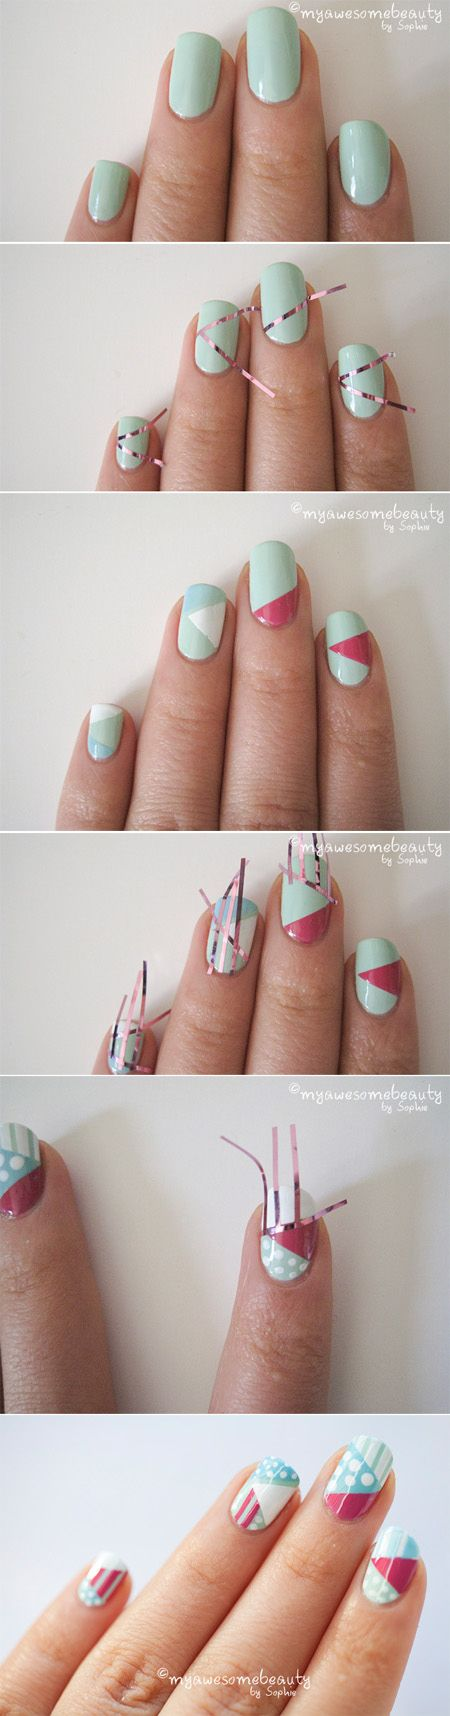 12 Awesome nail designs